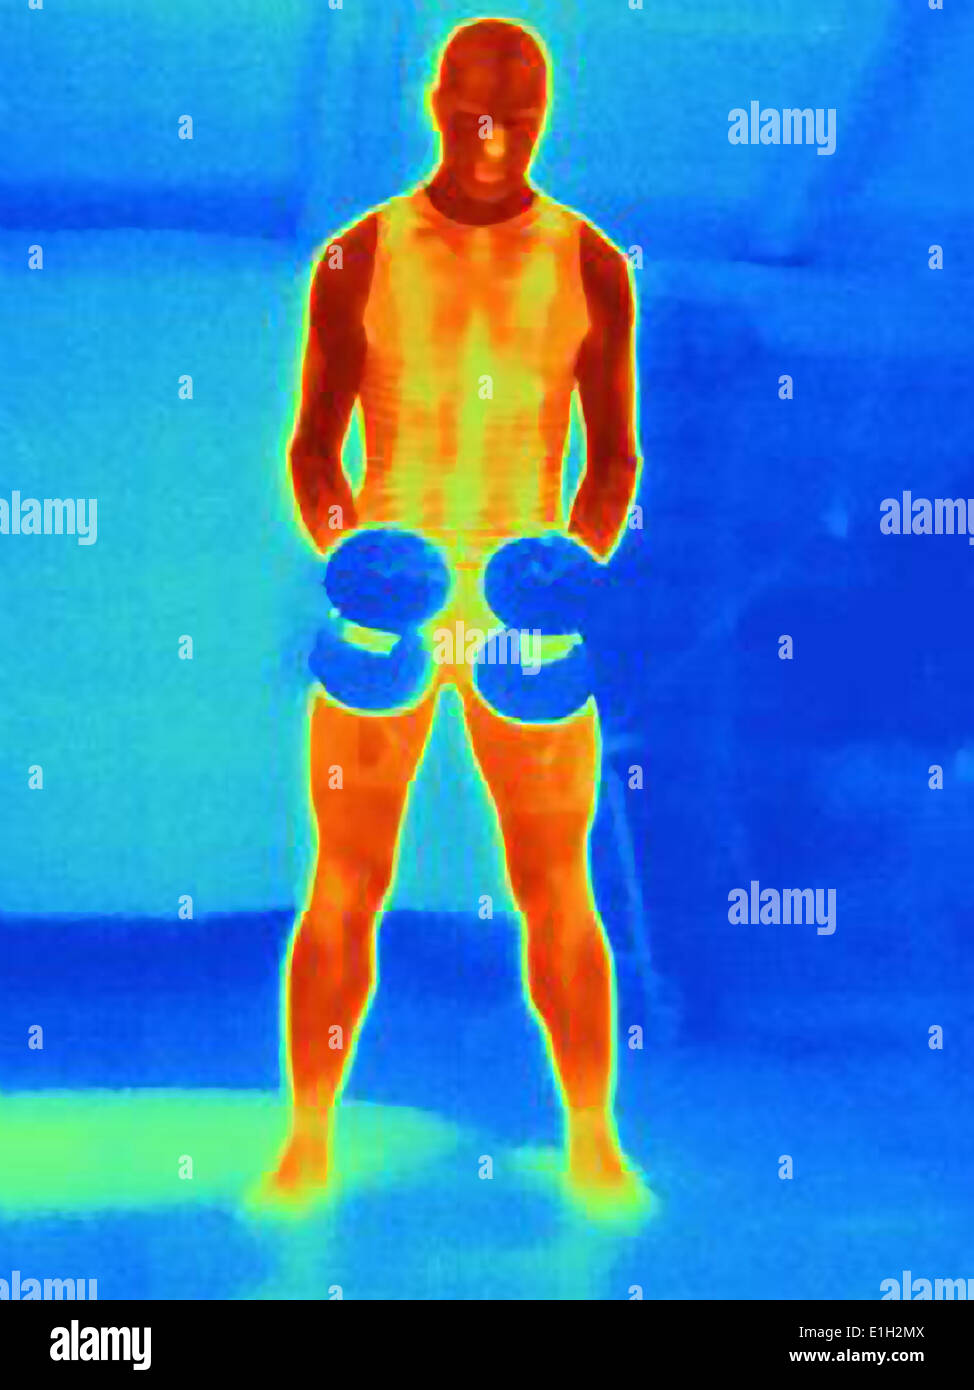 Front view thermal image of young man training with barbells. The image shows the heat produced by the muscles - Stock Image